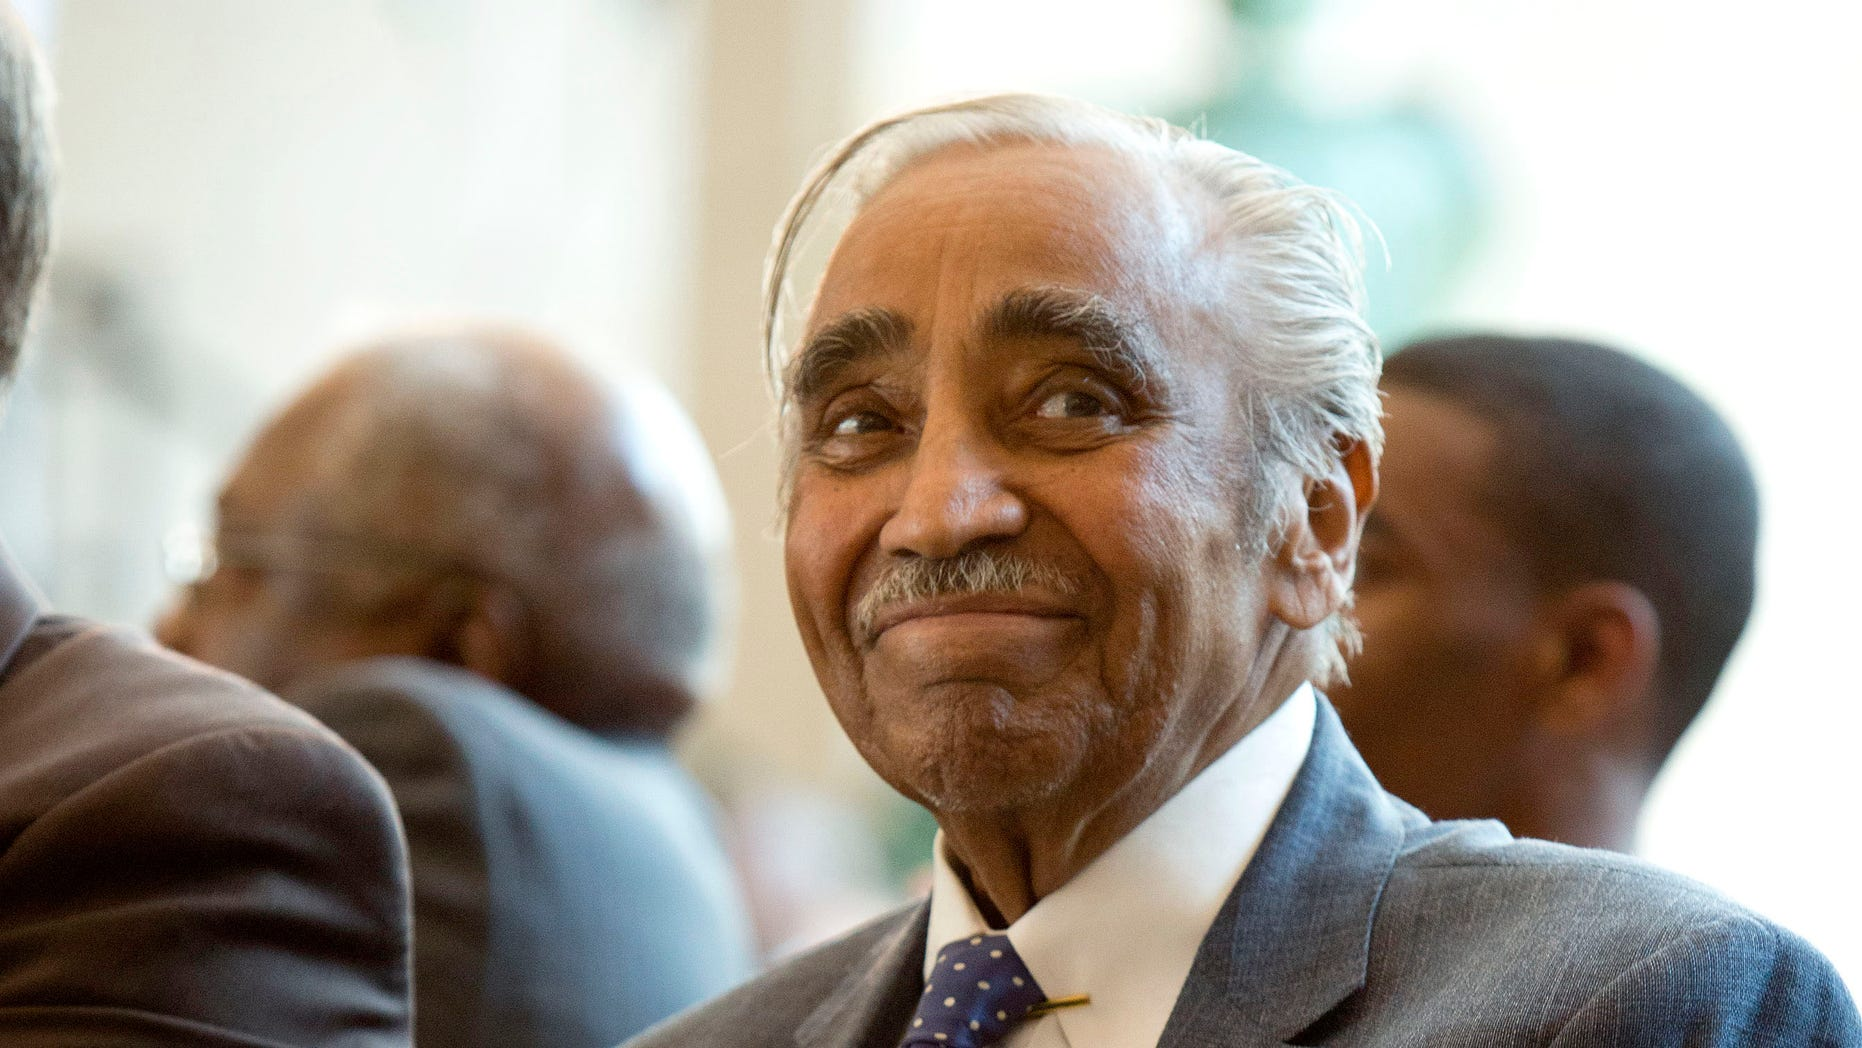 FILE: June 27, 2012: Rep. Charles Rangel, D-N.Y., at a ceremony at which the Congressional Gold Medal were awarded to the Montford Point Marines, on Capitol Hill in Washington, D.C.